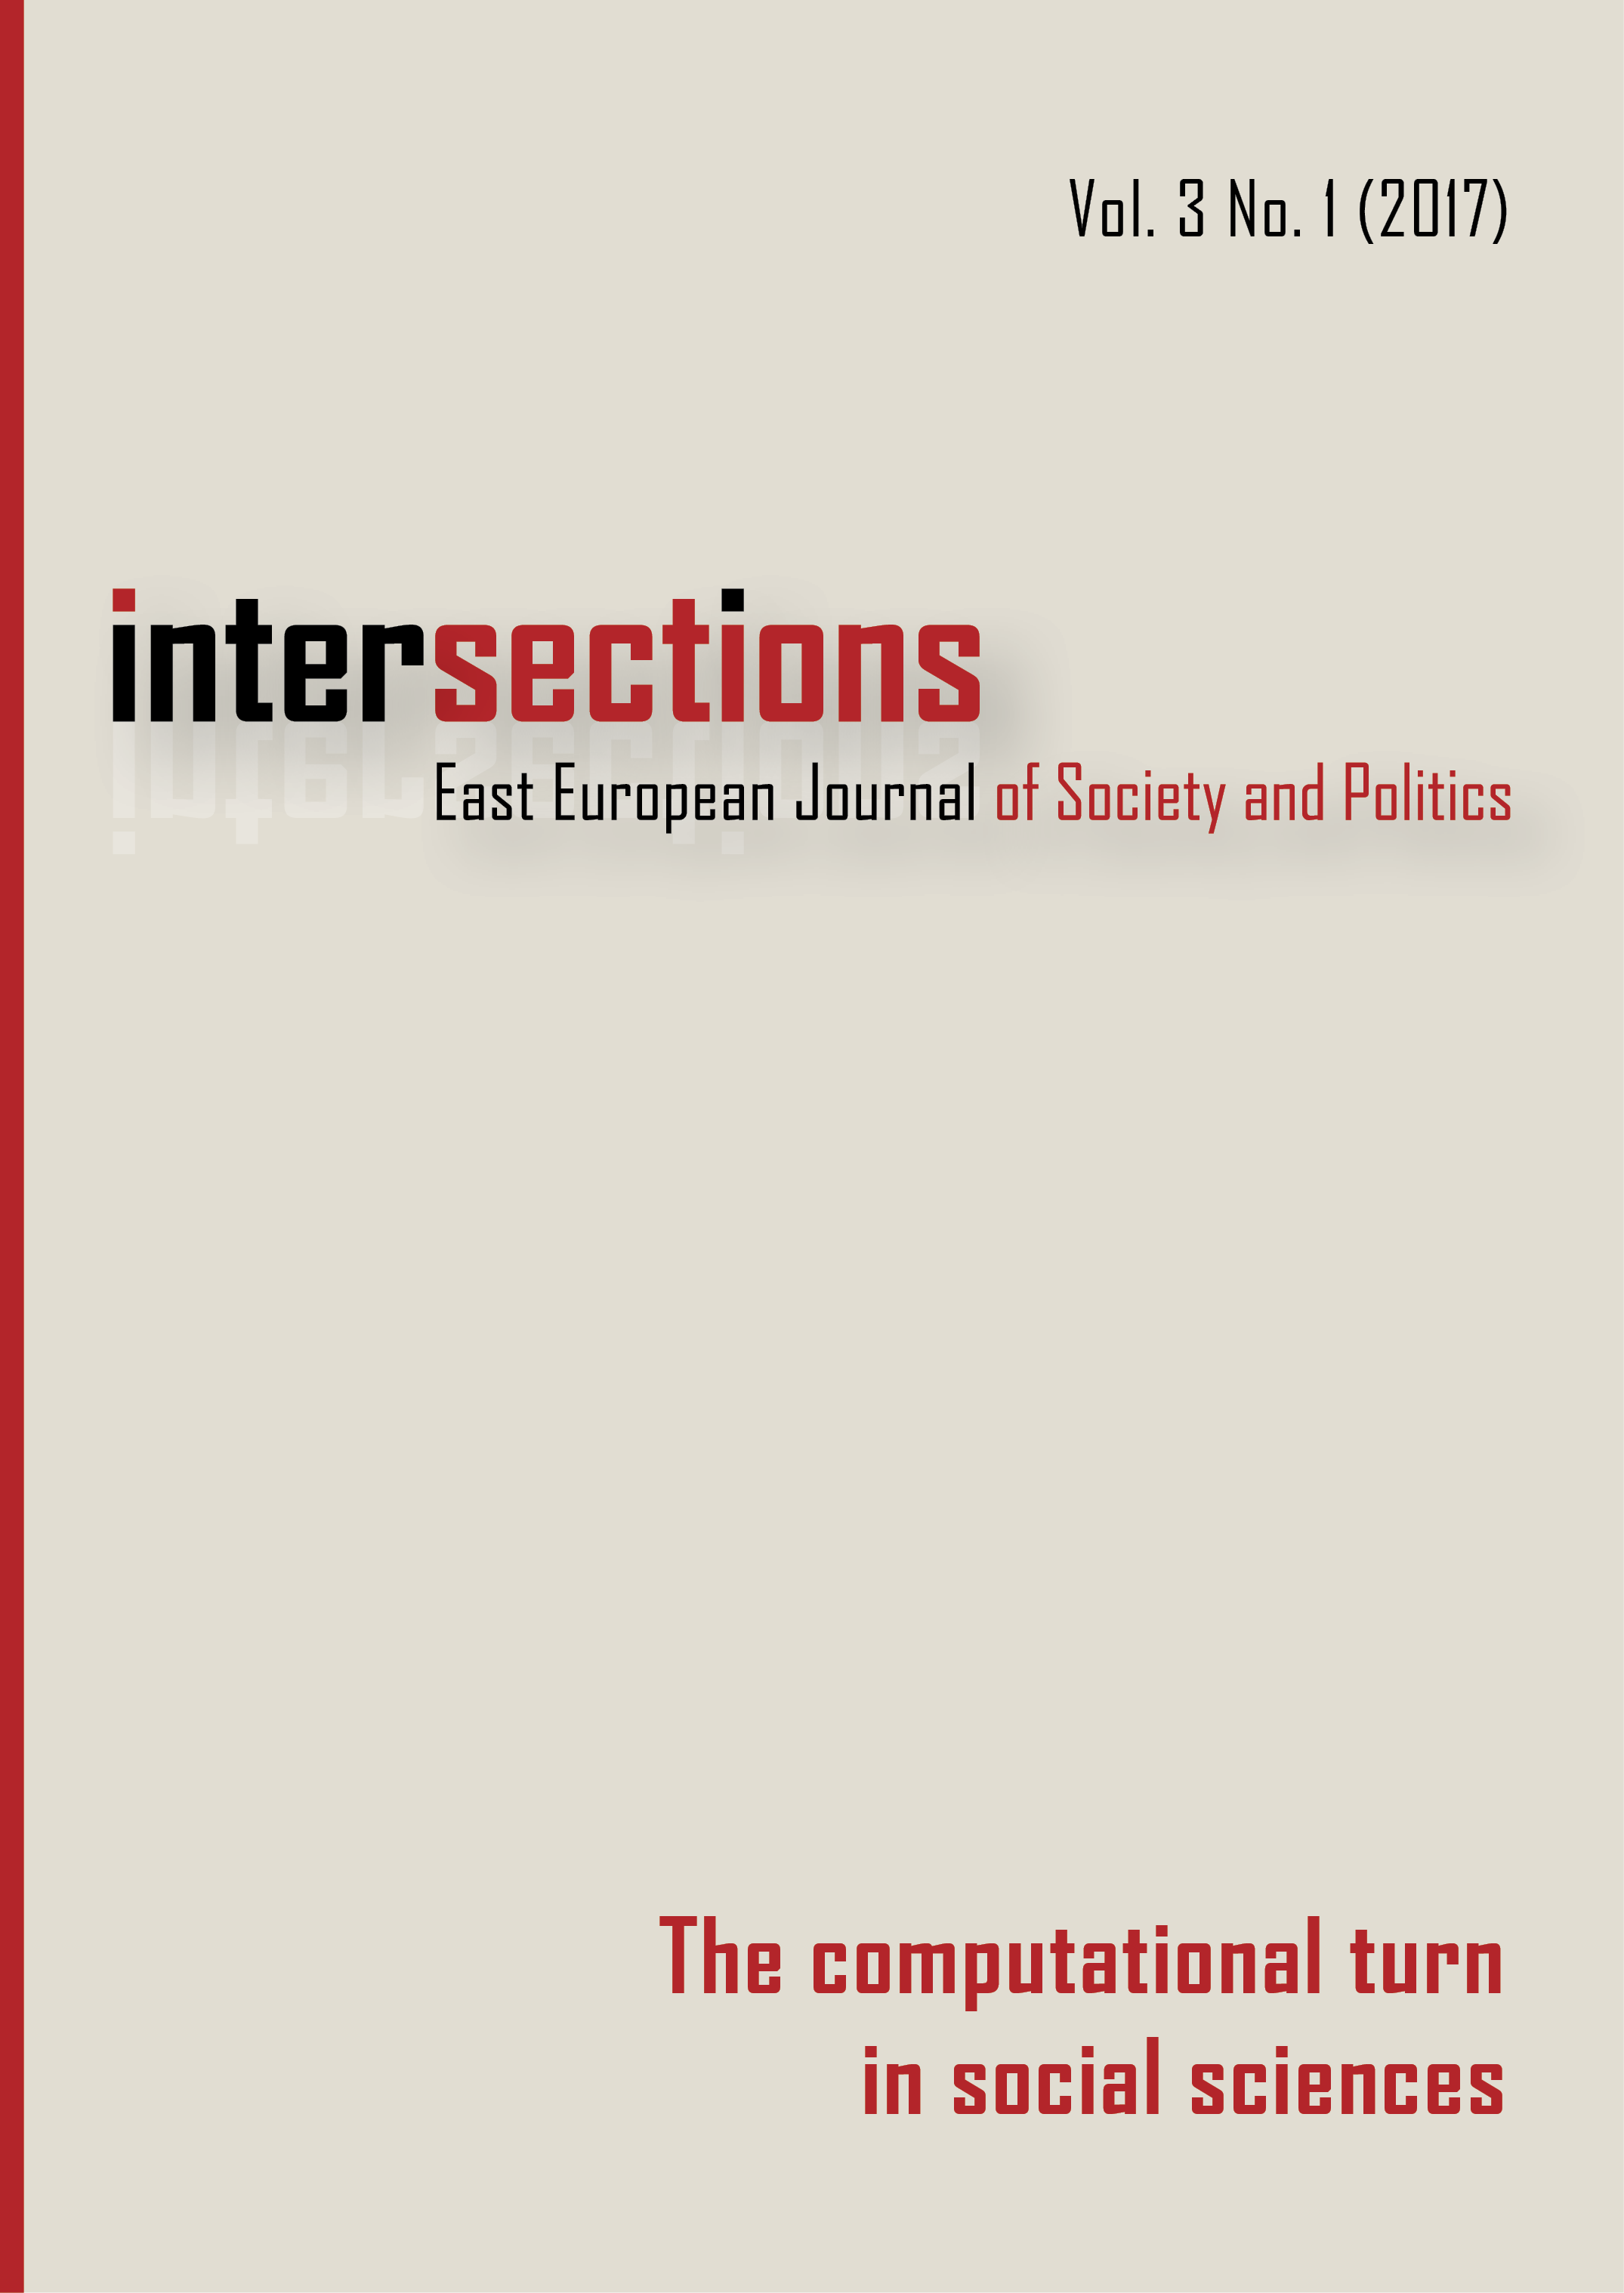 View Vol. 3 No. 1 (2017): The Computational Turn in Social Sciences